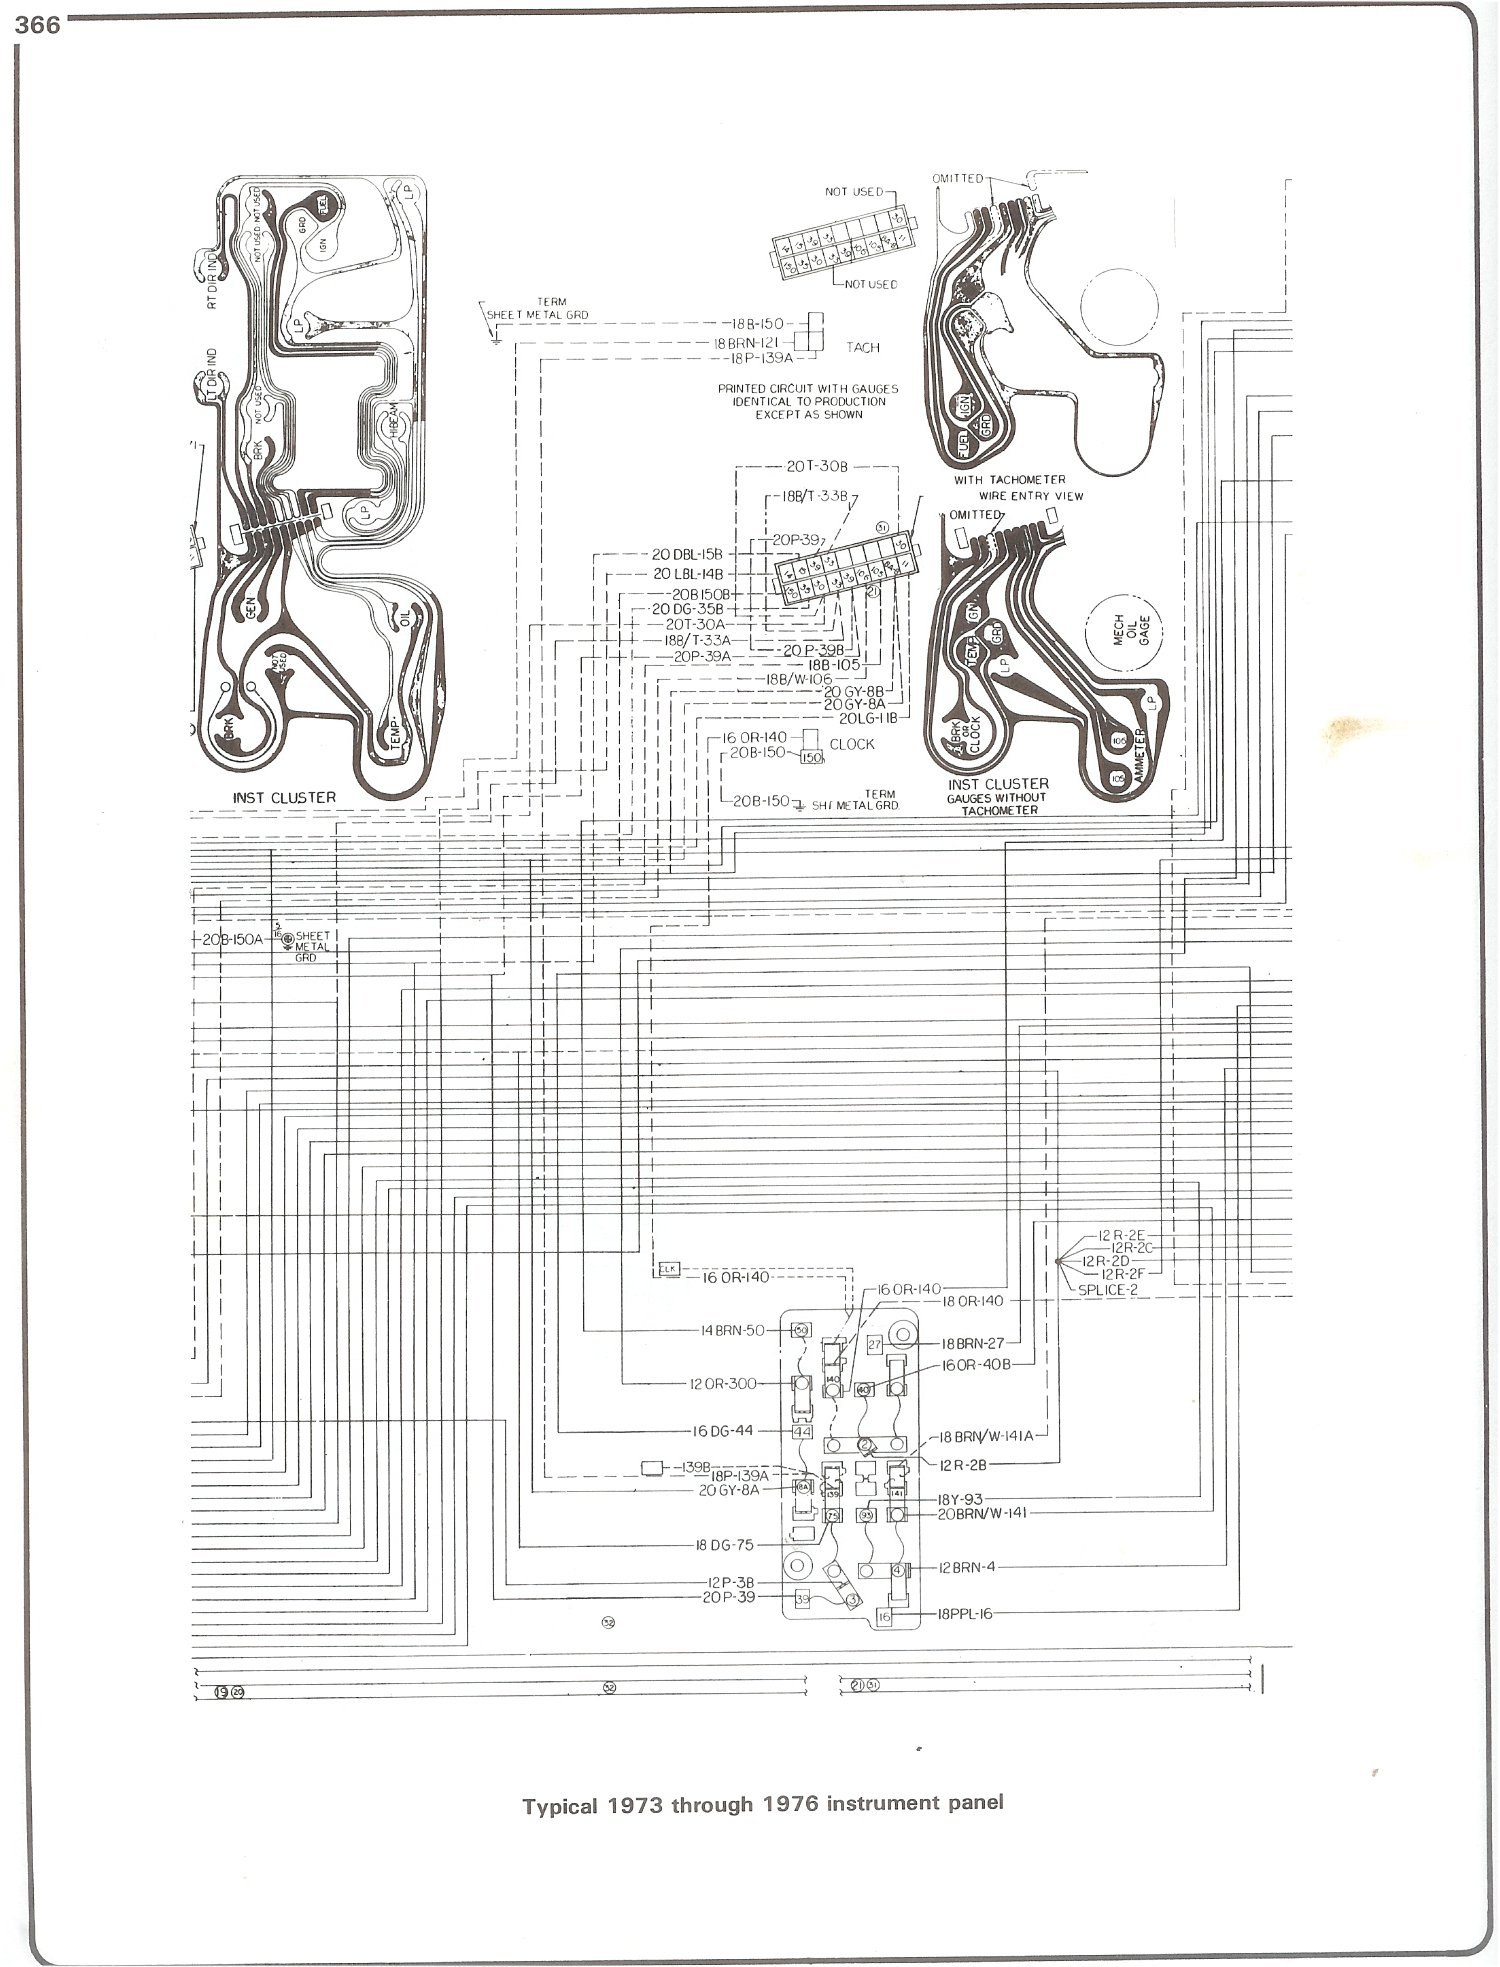 1985 Gmc Wiring Diagram 86 chevy truck wiring diagram 1985